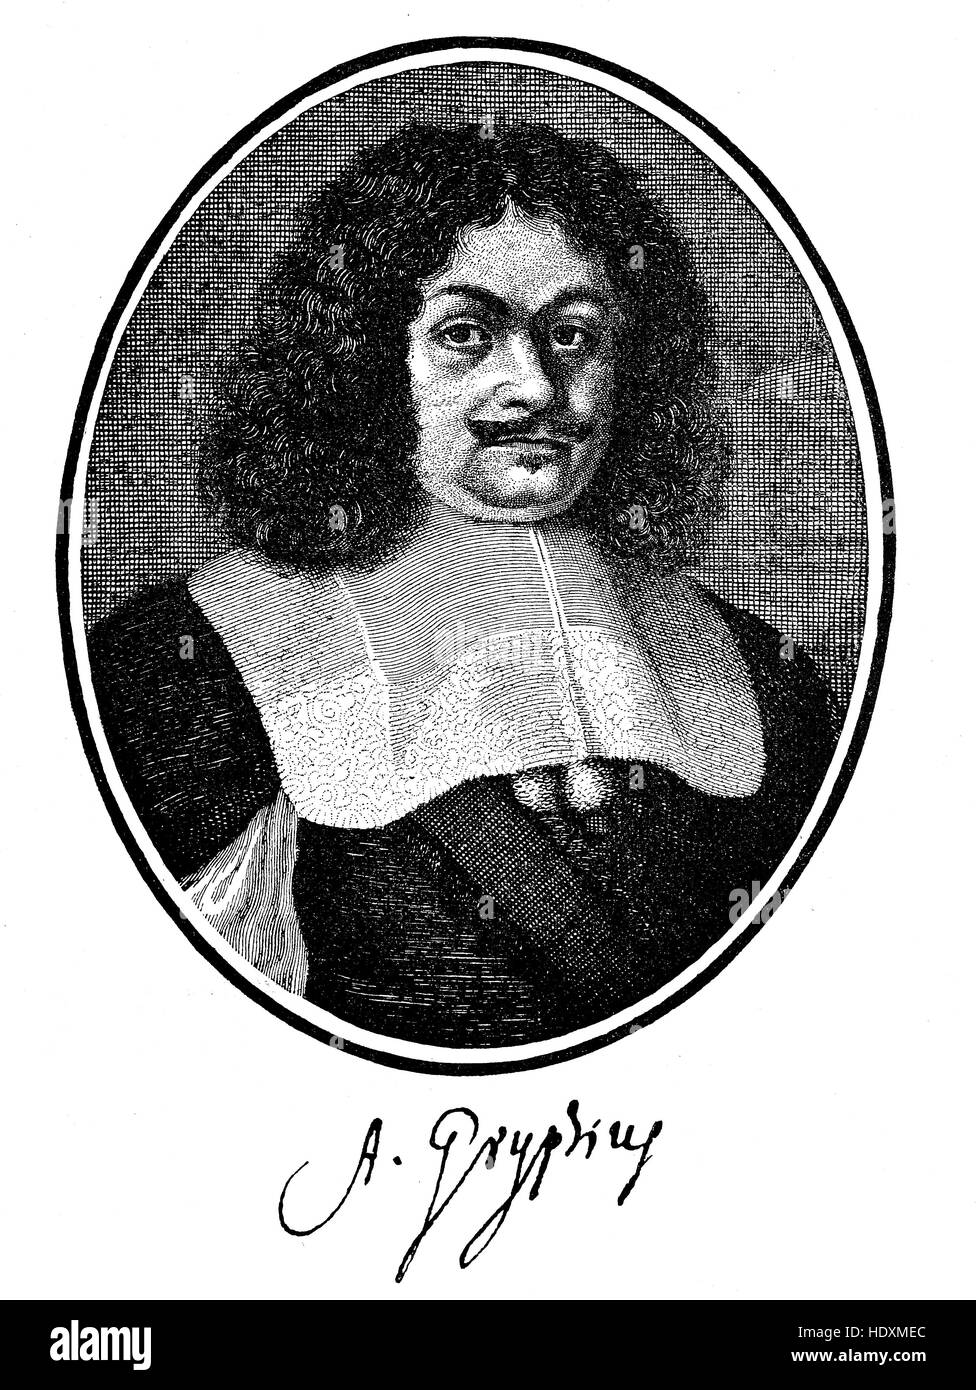 Andreas Gryphius, 1616-1664, a German lyric poet and dramatist, woodcut from the year 1882, digital improved - Stock Image